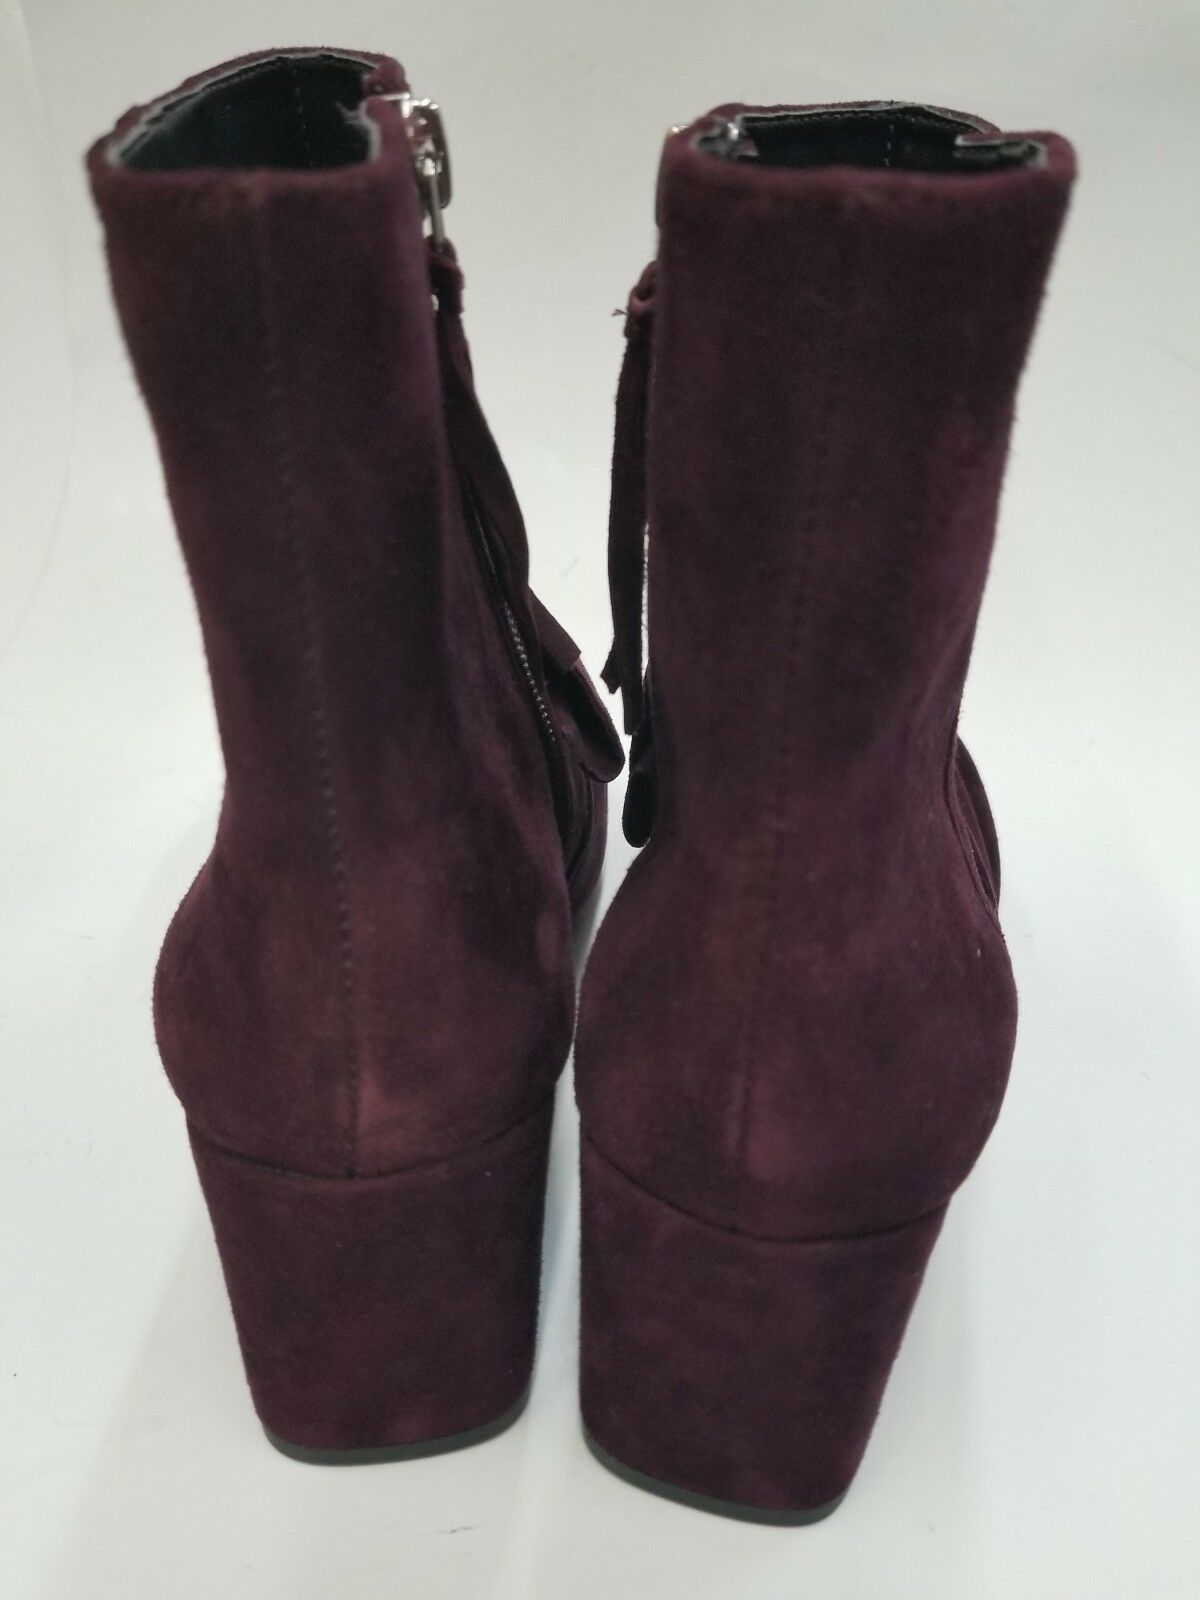 NEW REBECCA MINKOFF MAROON MAROON MAROON SUEDE ANKLE BOOTS SIZE 6 518f7d